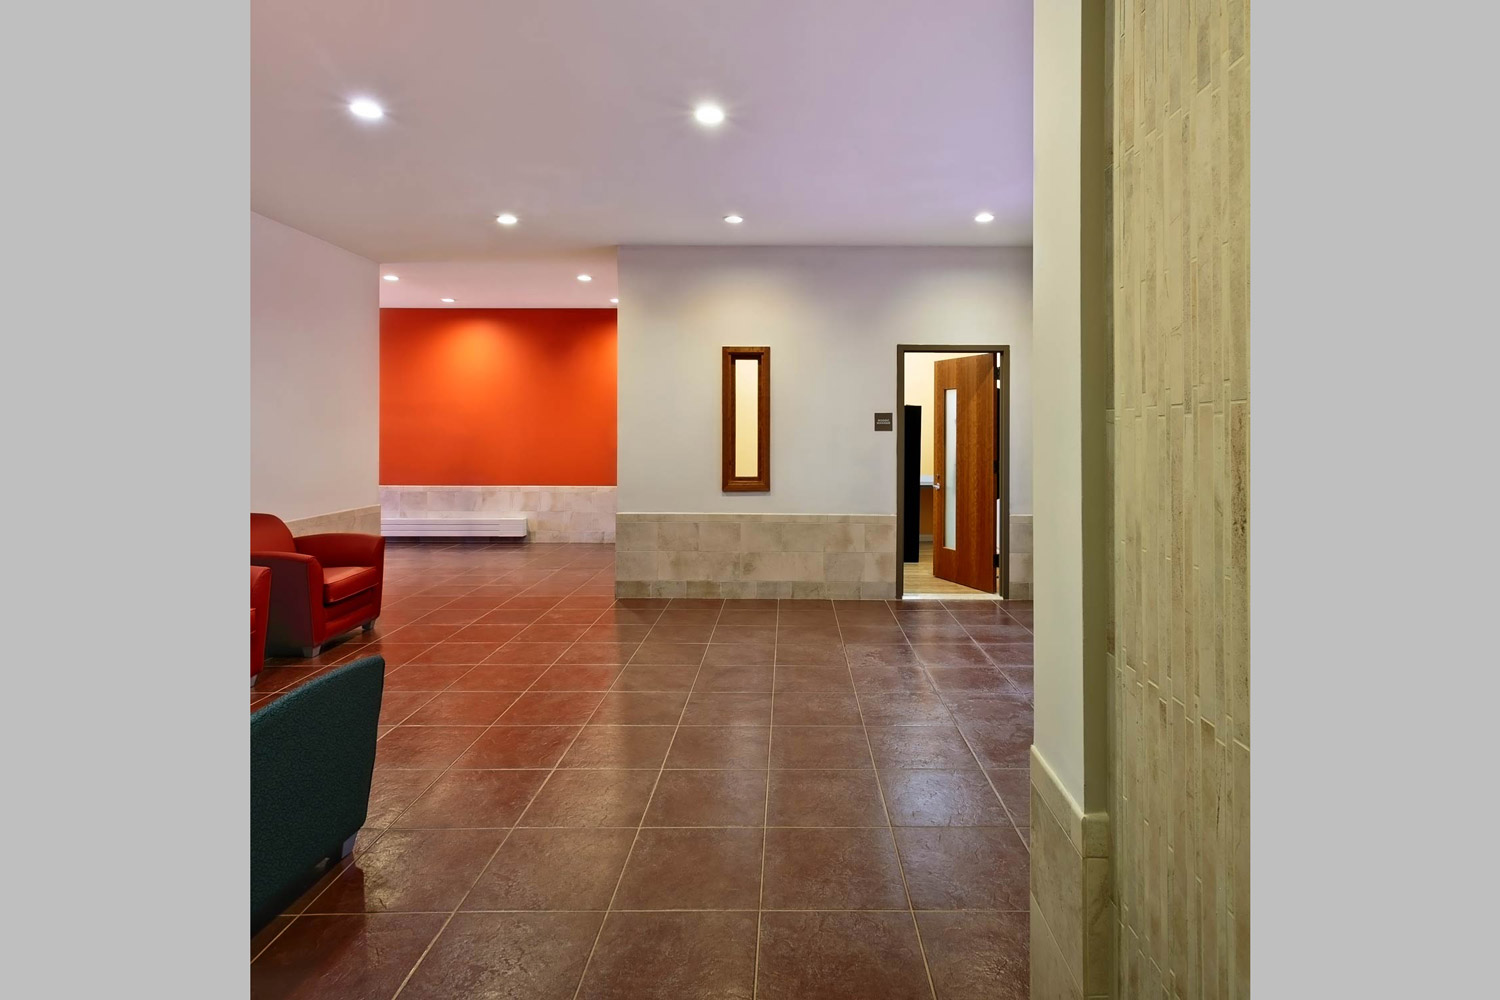 The first floor elevator lobby offers residents lounging and access to an interior courtyard.